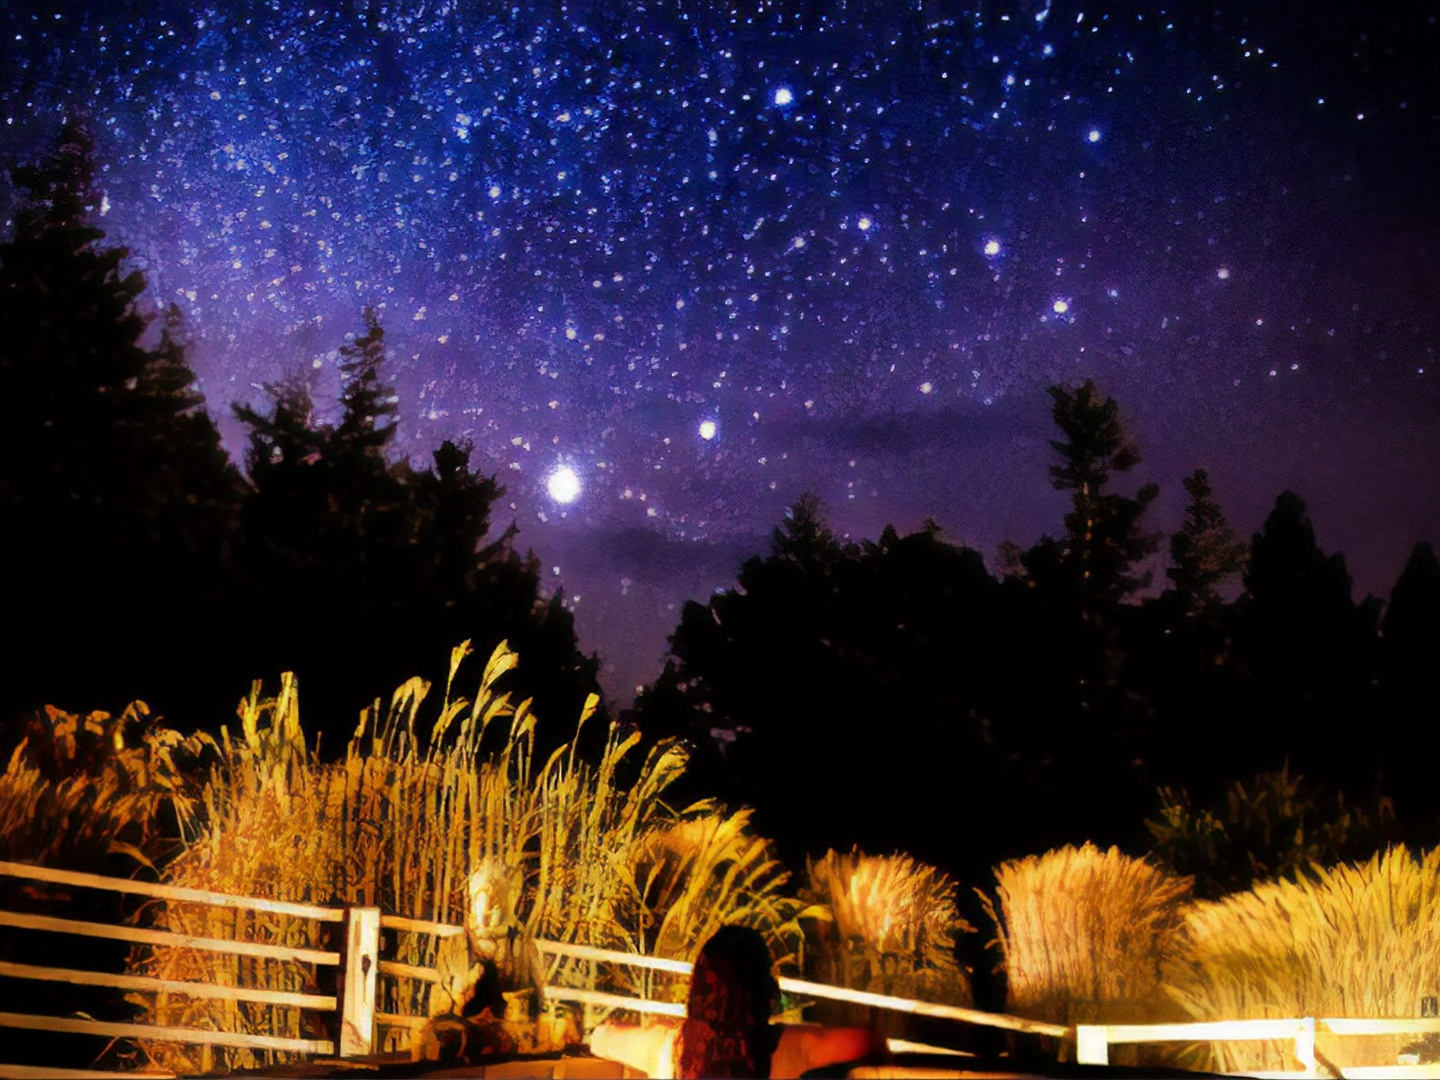 A close up of a mans face with fence in the night sky at WildSpring Guest Habitat.